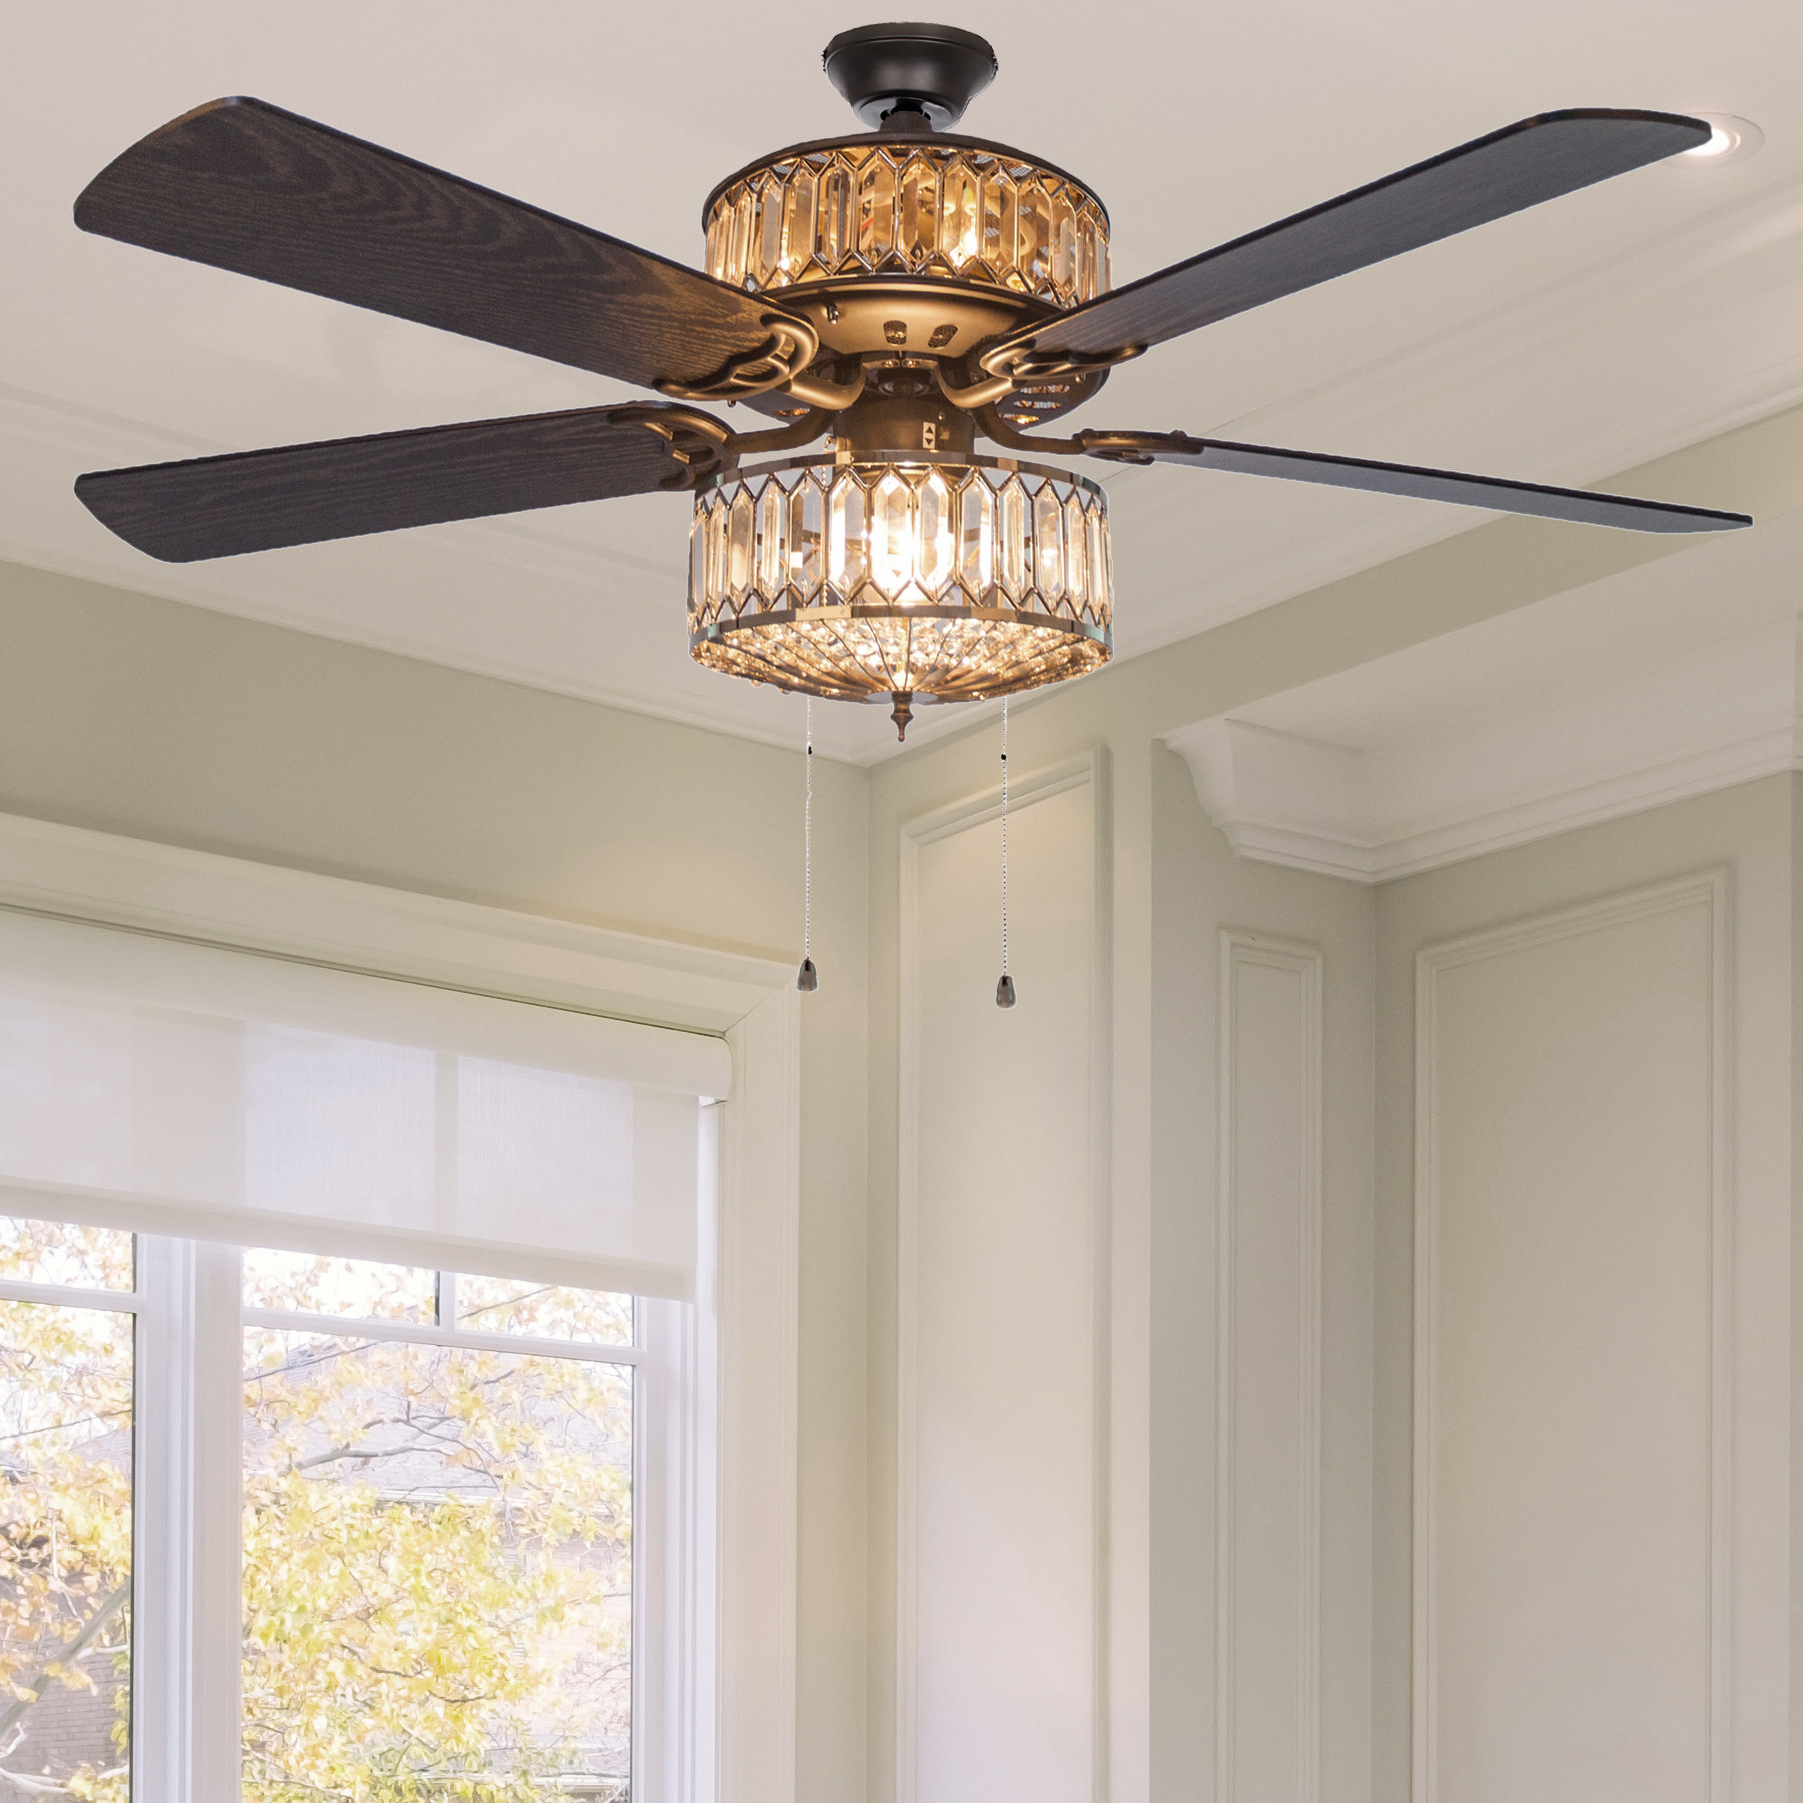 """House Of Hampton 52"""" Norah 5 Blade Ceiling Fan With Remote Throughout 2019 Njie Caged Crystal 5 Blade Ceiling Fans (View 8 of 20)"""